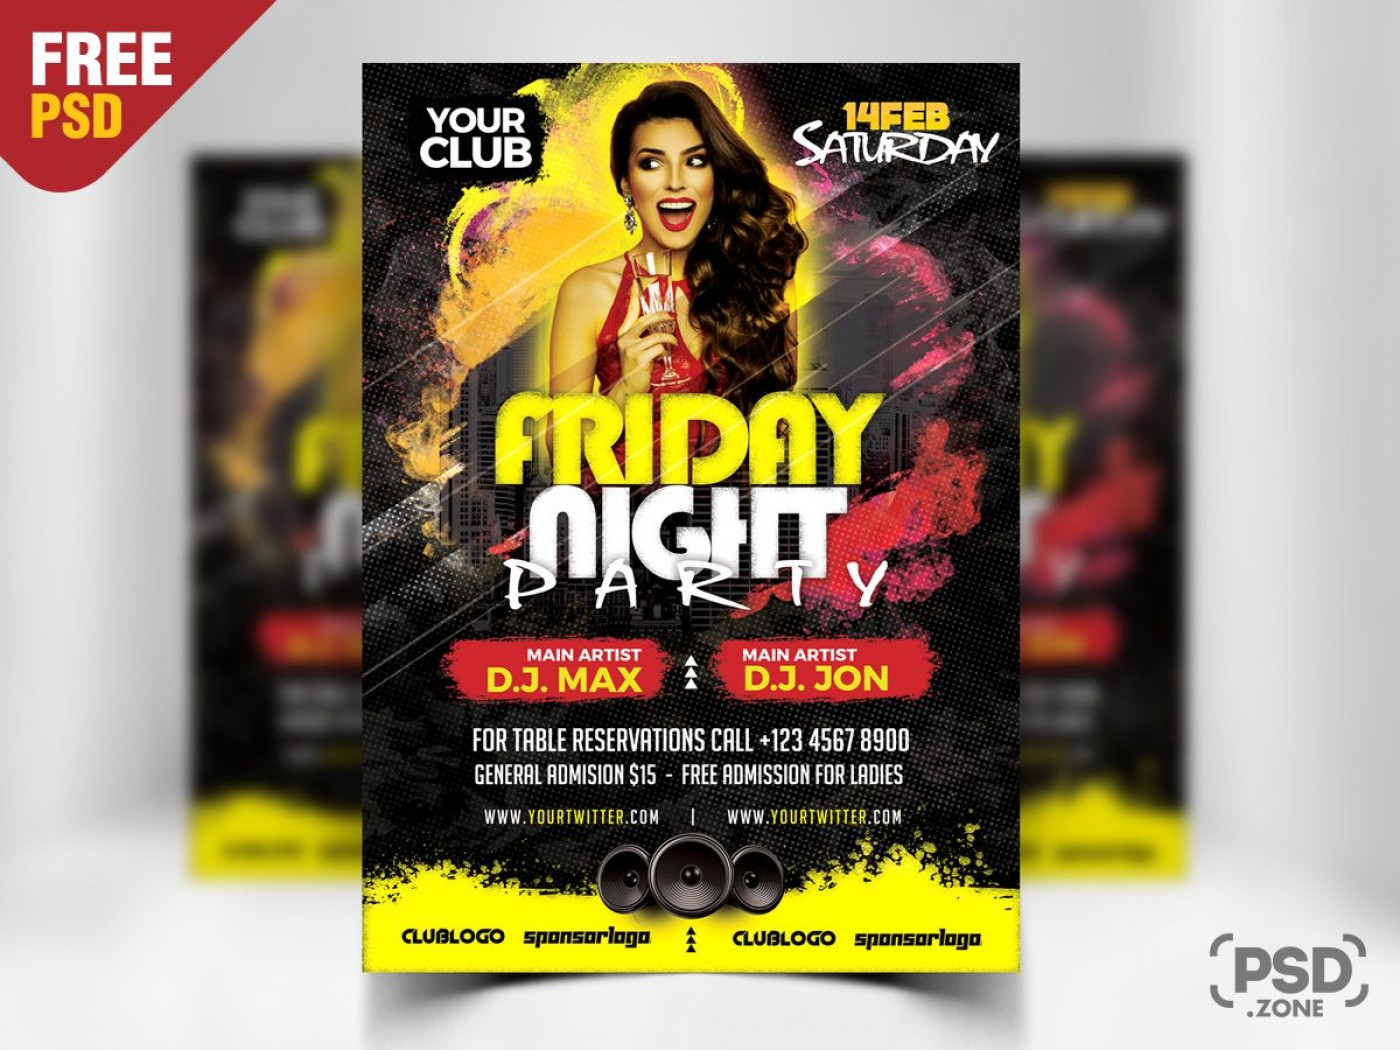 007 Awesome Free Party Flyer Template For Photoshop Inspiration  Pool Psd Download1400